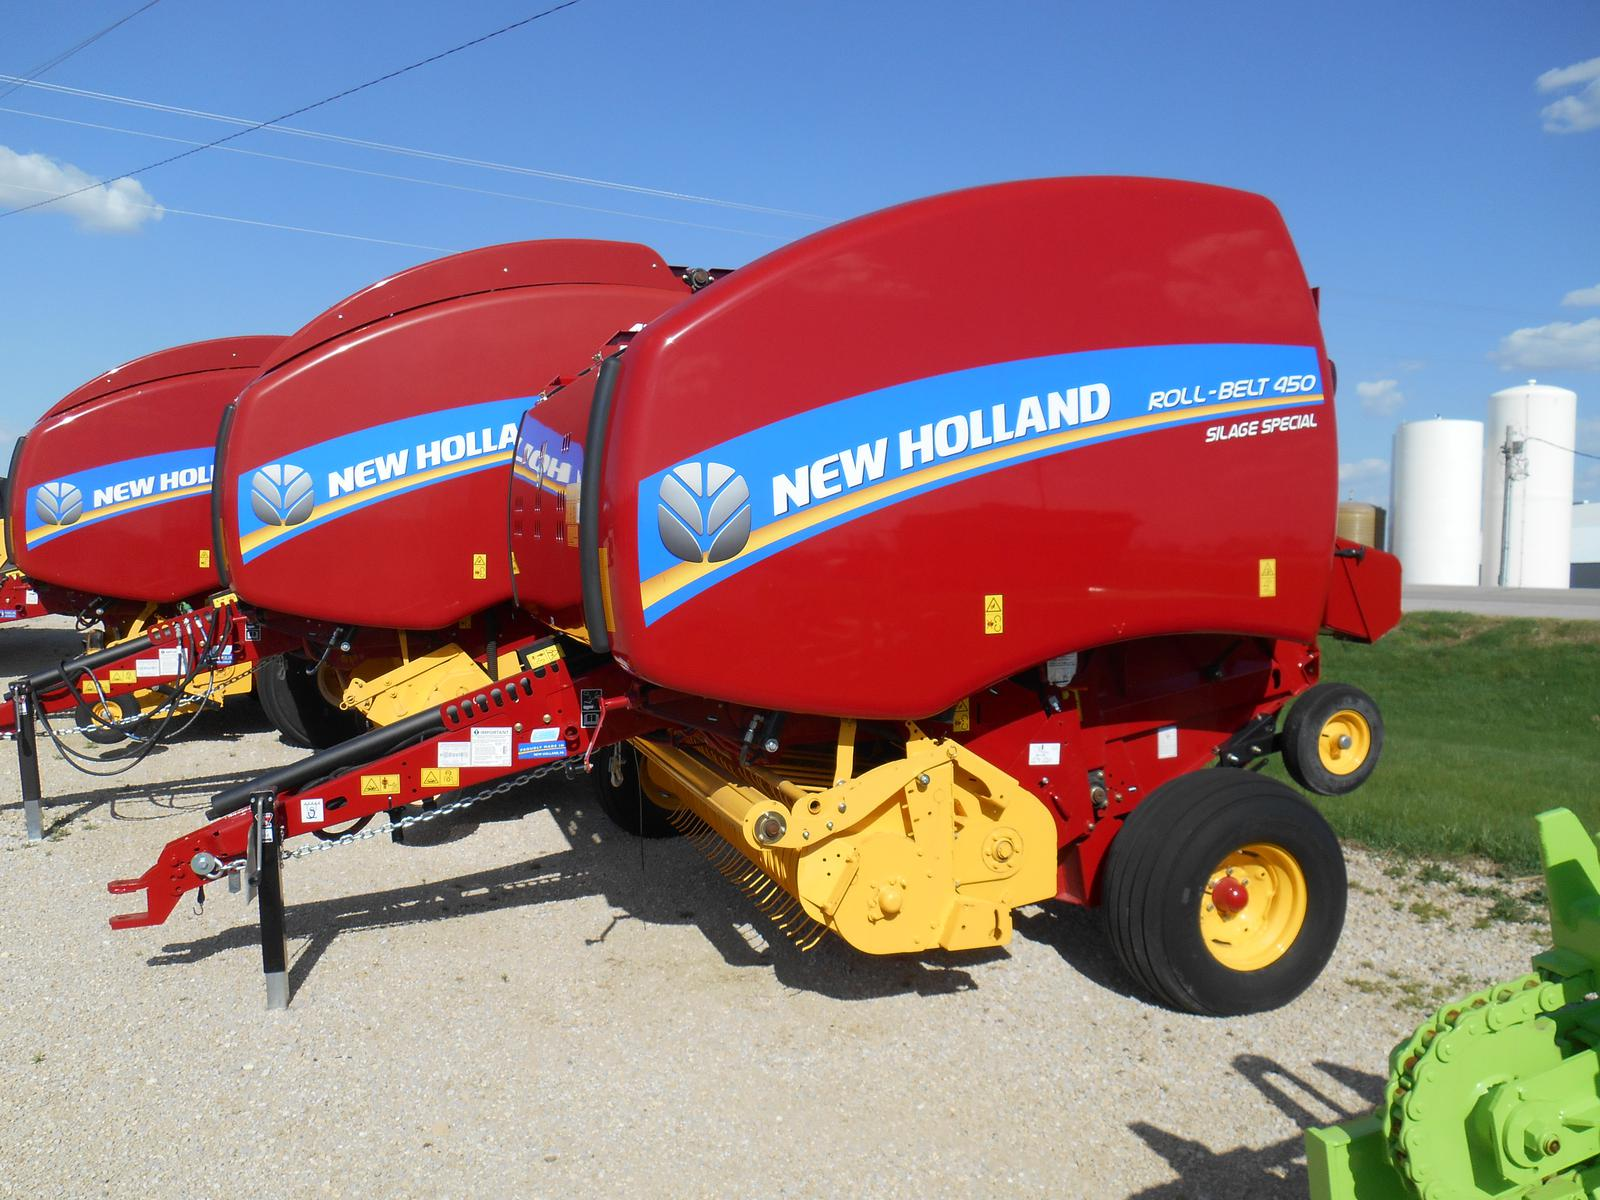 2017 New Holland Agriculture Roll-Belt™ Round Balers Roll-Belt™ 450